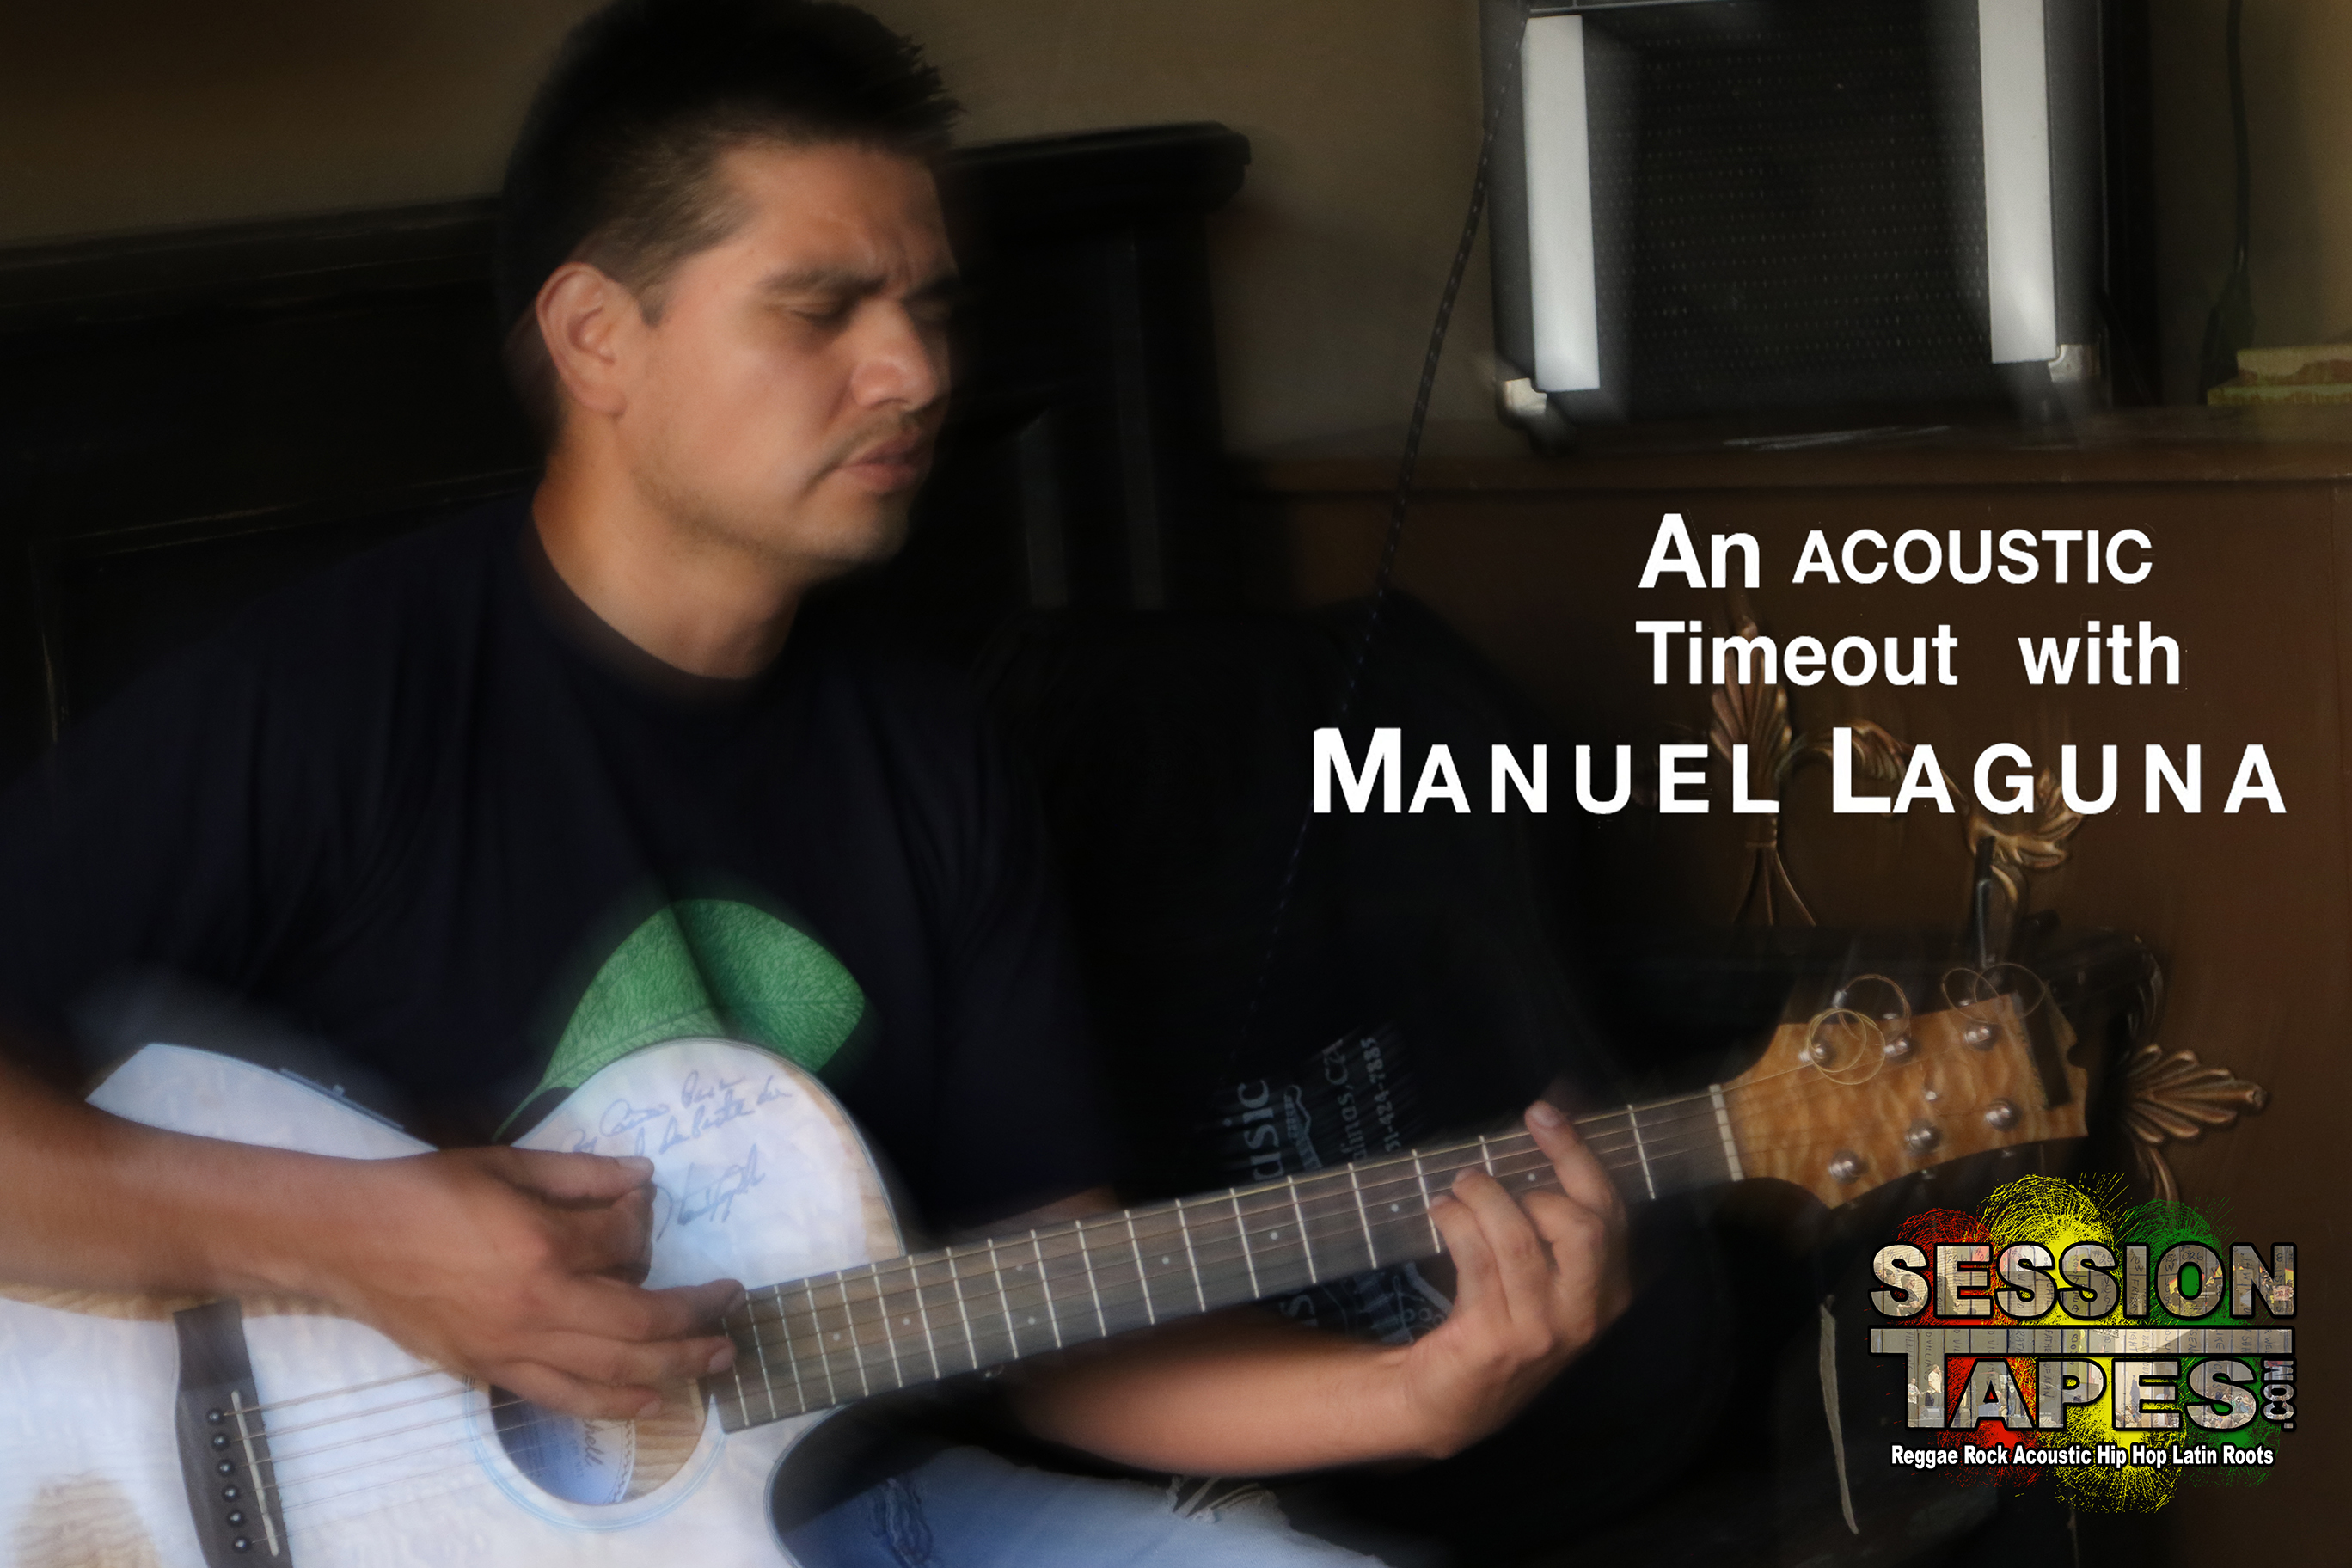 An Acoustic Timeout With Manuel Laguna